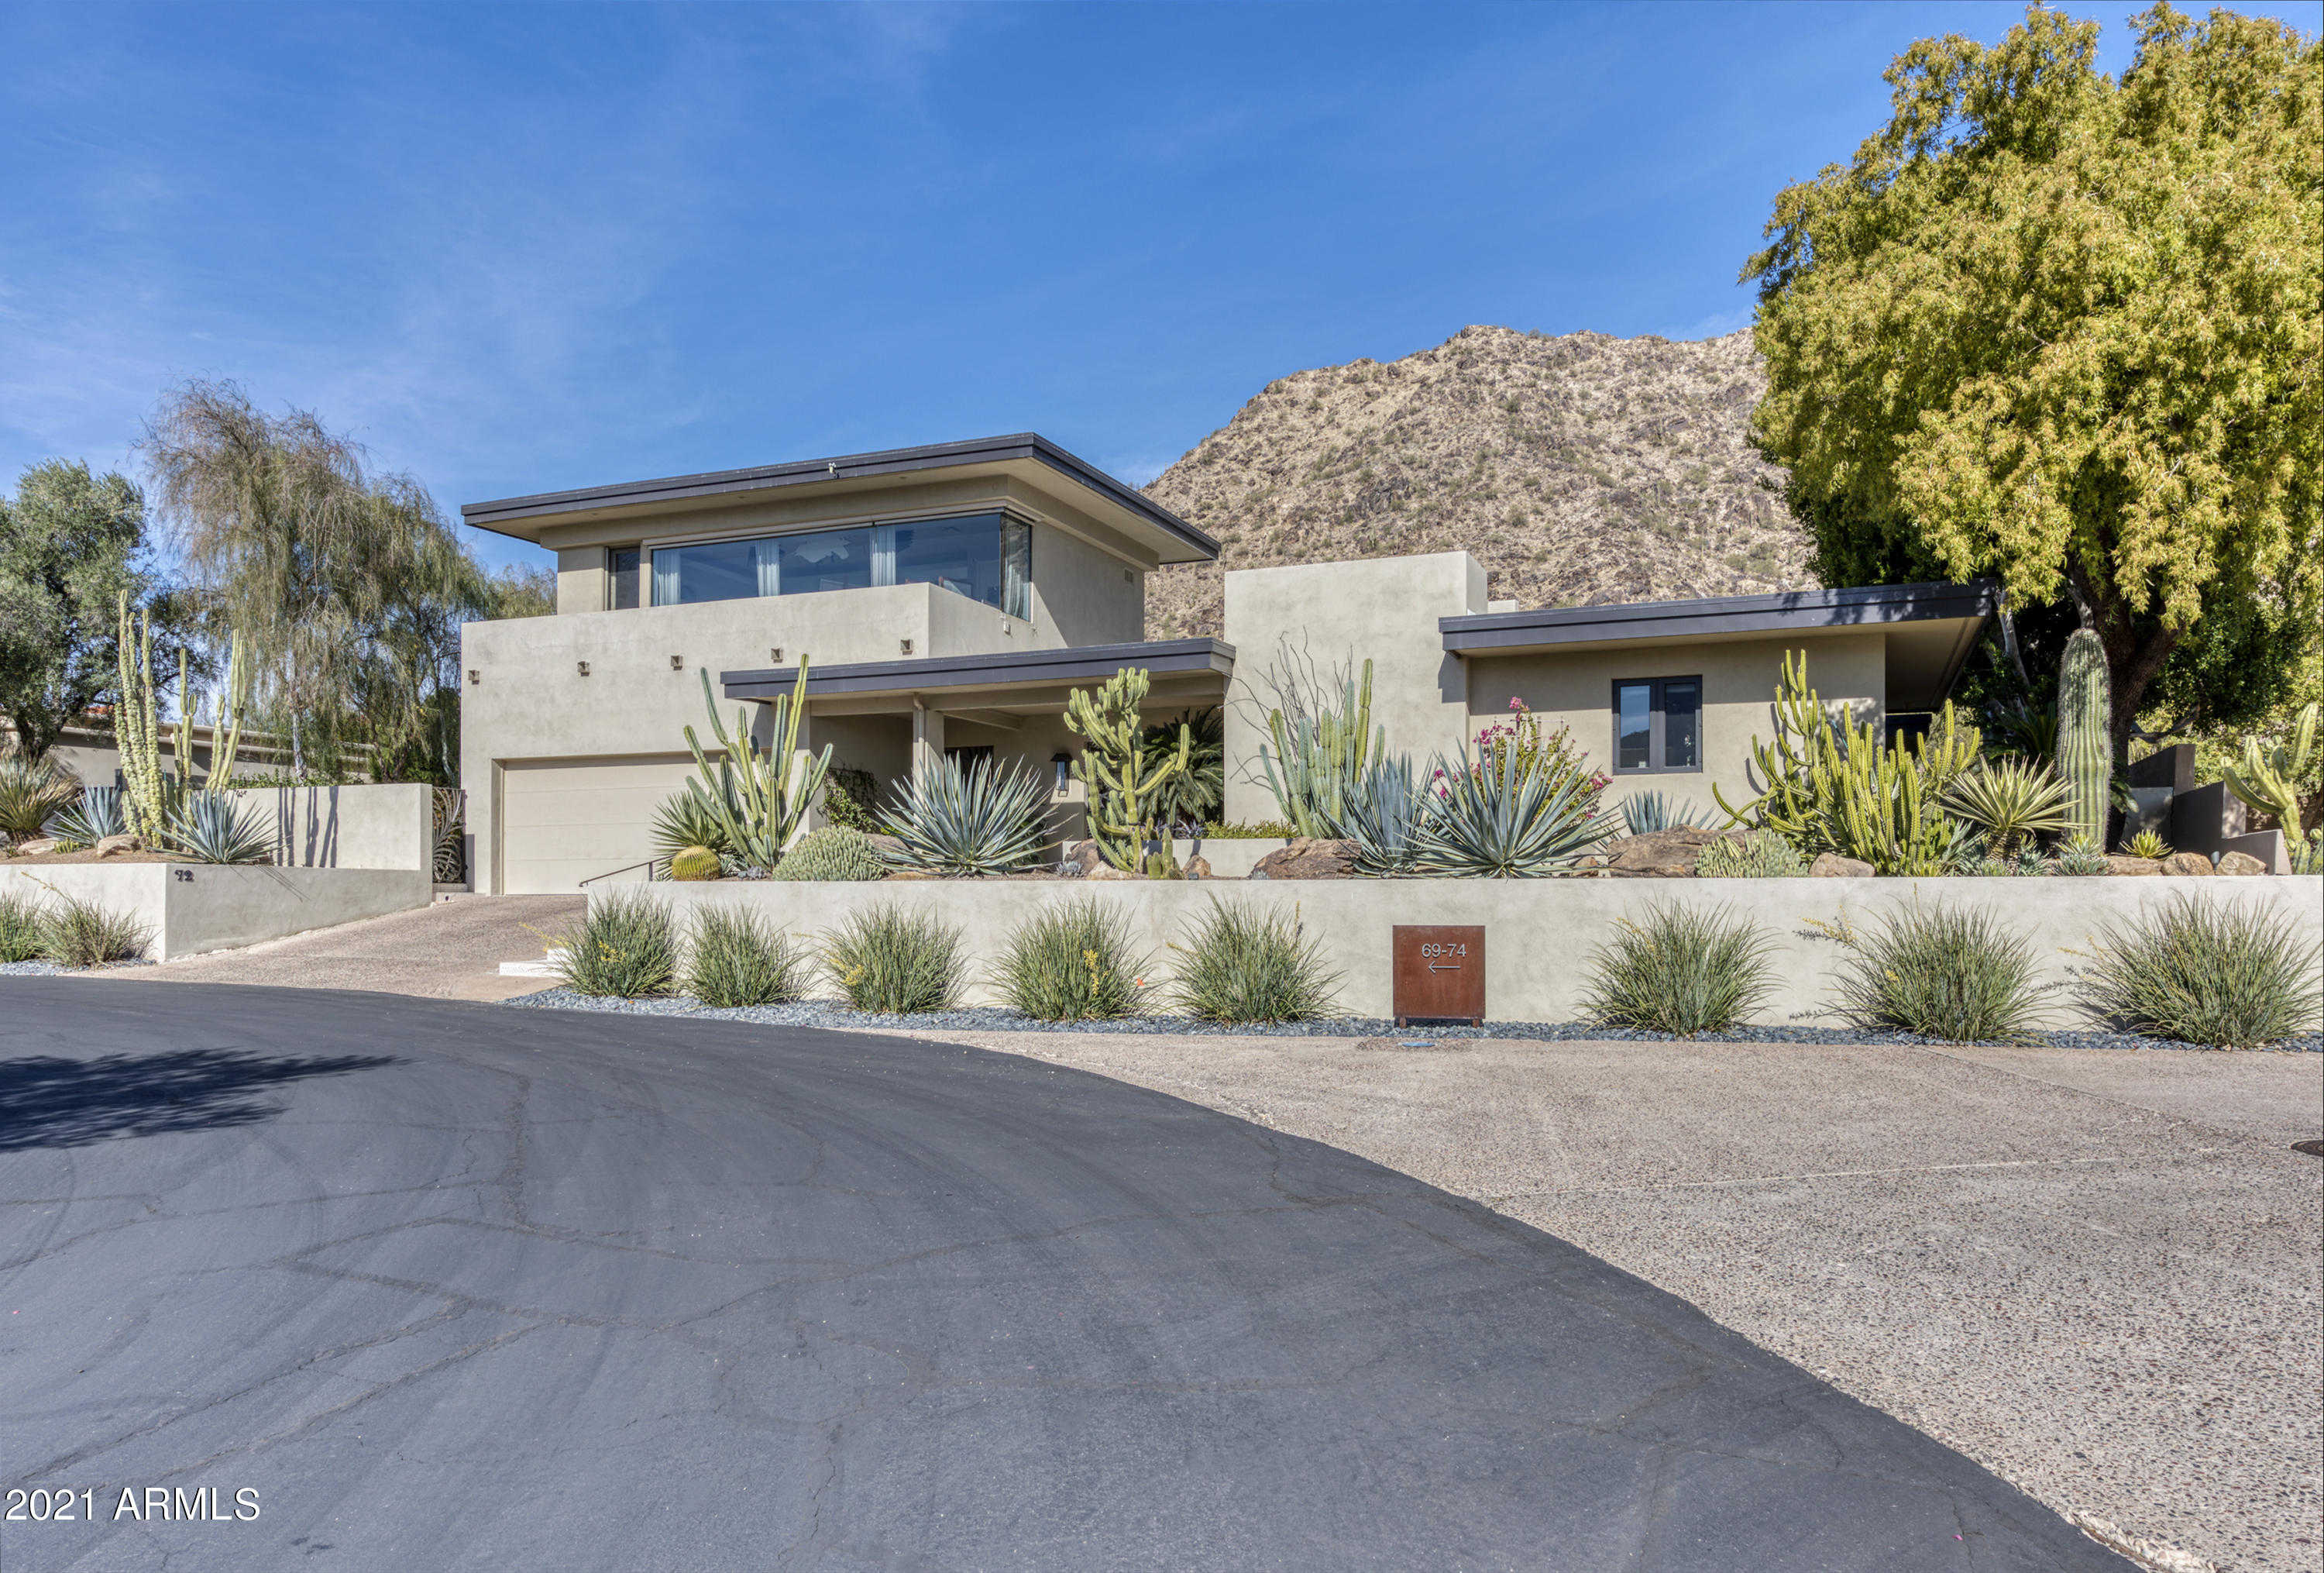 $1,849,000 - 3Br/3Ba - Home for Sale in Colonia Miramonte, Paradise Valley